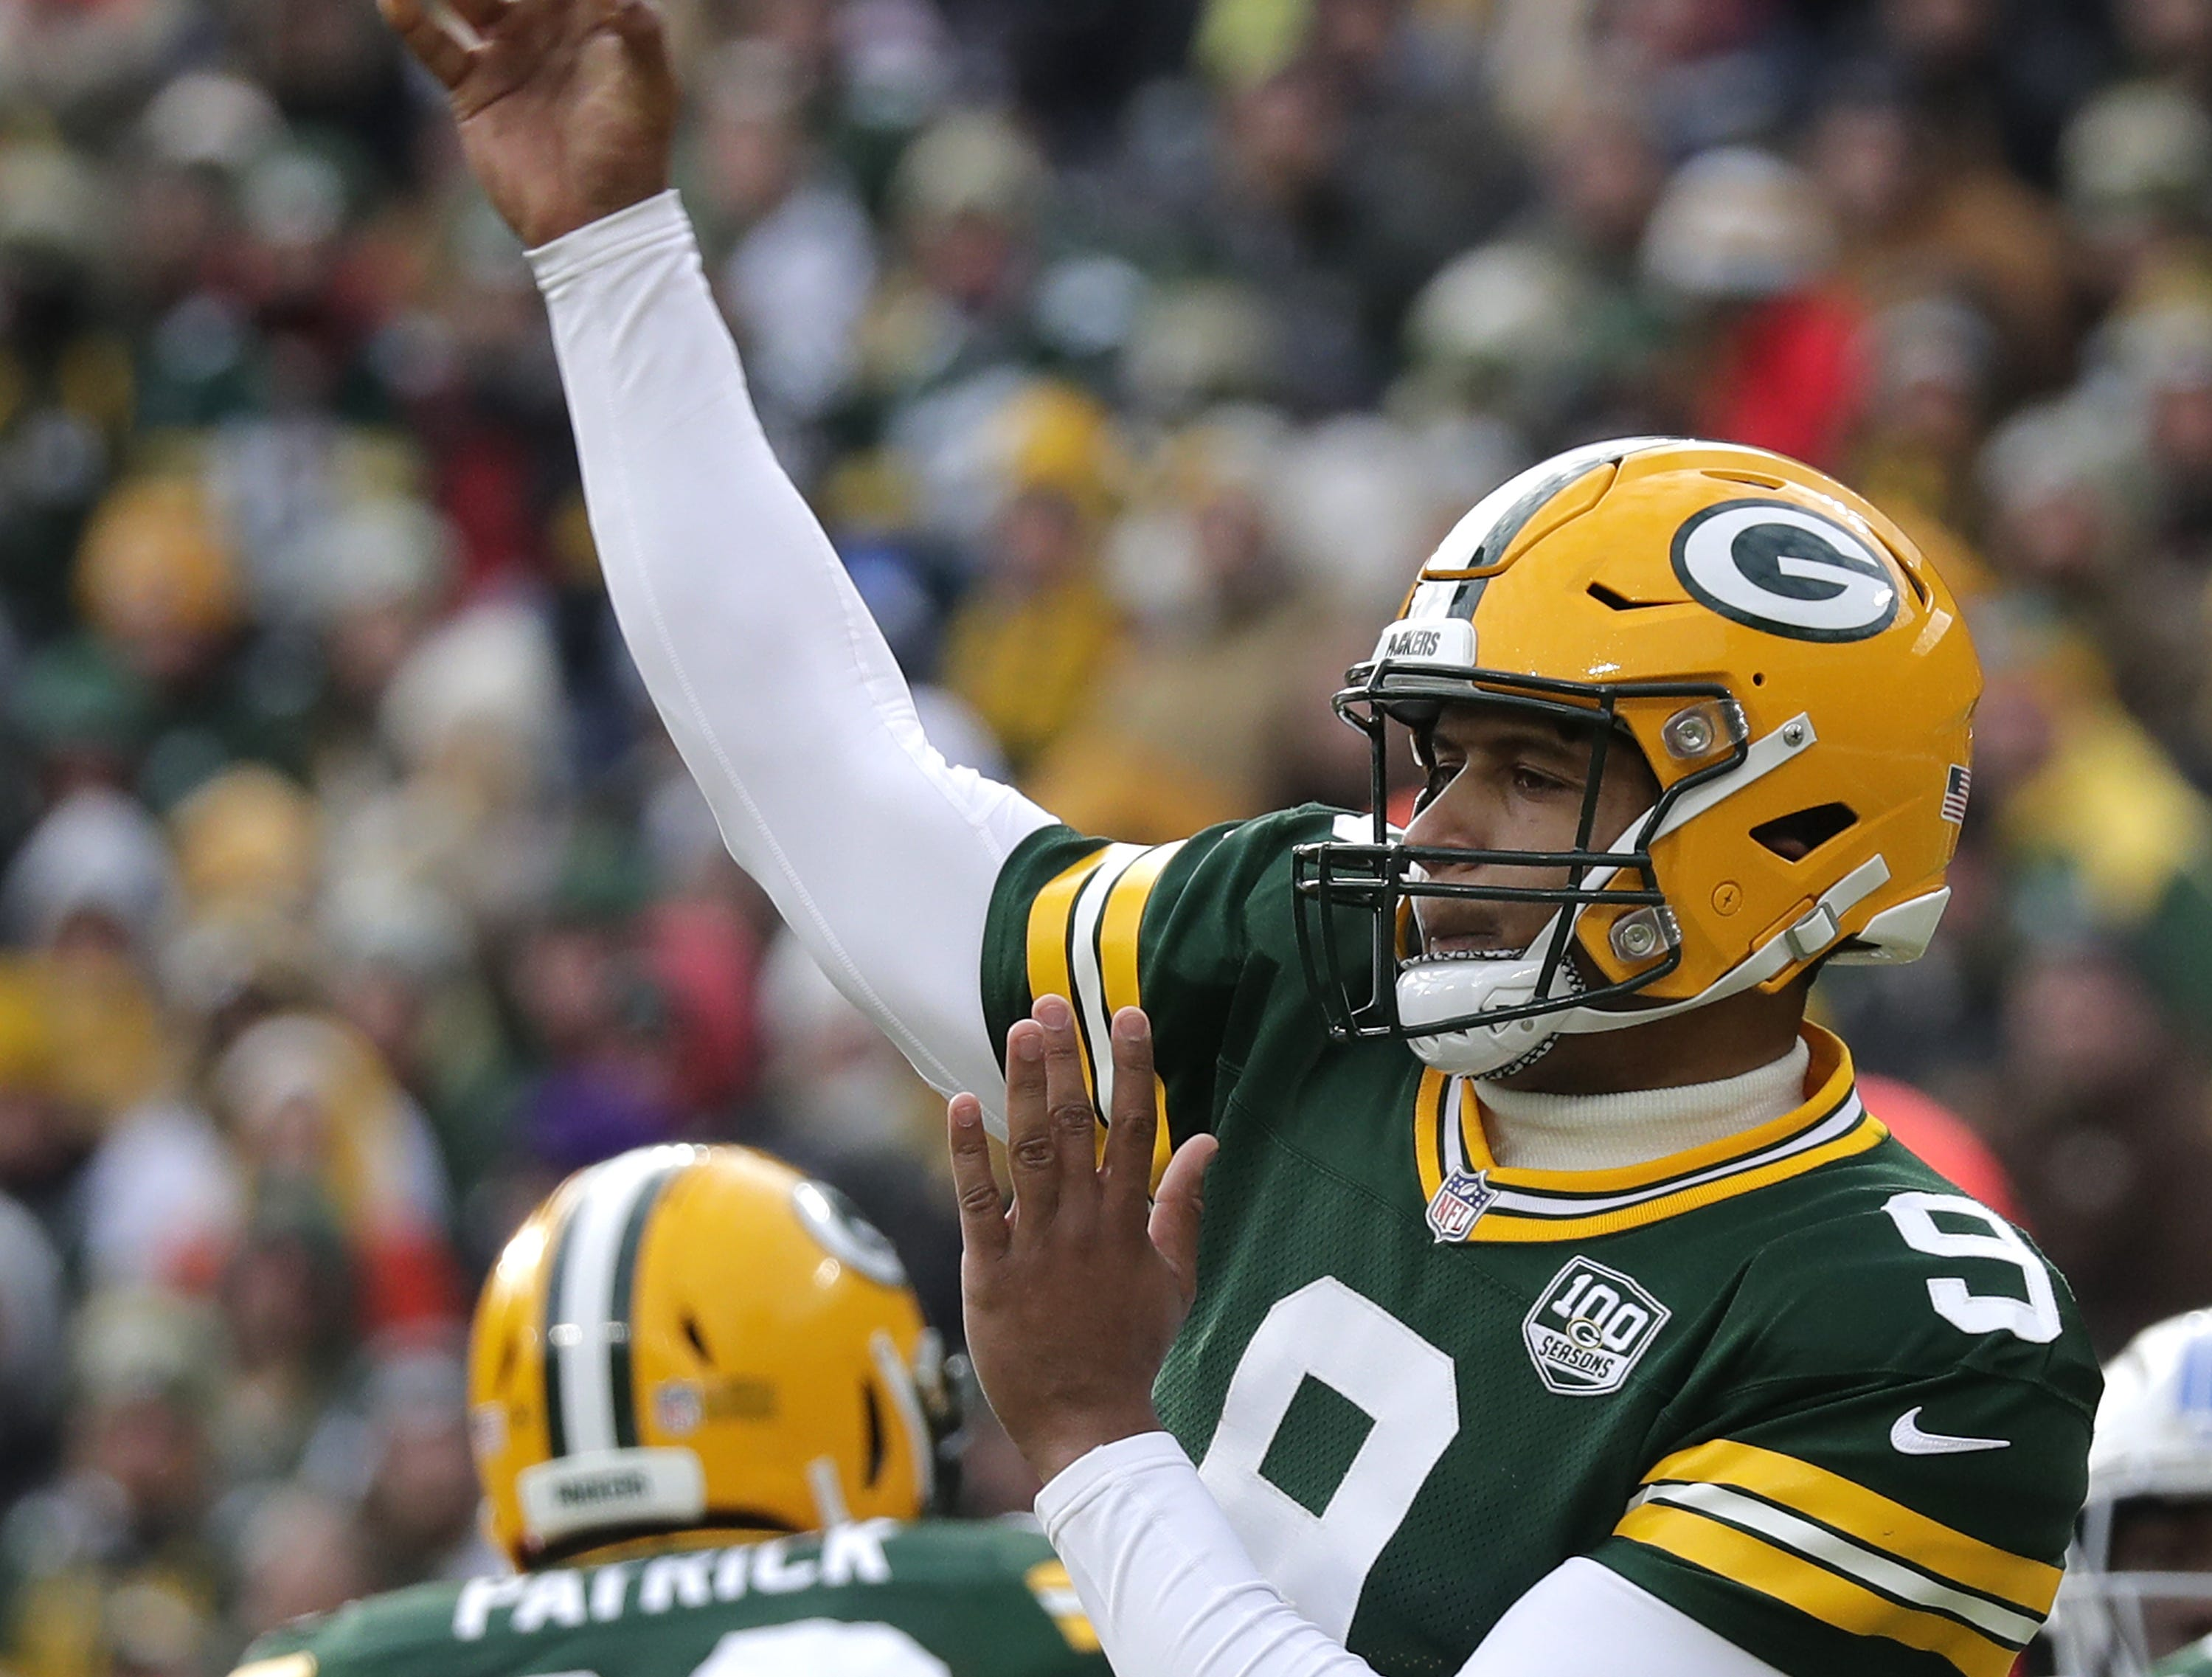 Green Bay Packers quarterback DeShone Kizer the Detroit Lions during their football game on Sunday, December 30, 2018, at Lambeau Field in Green Bay, Wis. Detroit defeated Green Bay 31 to 0. Wm. Glasheen/USA TODAY NETWORK-Wisconsin.